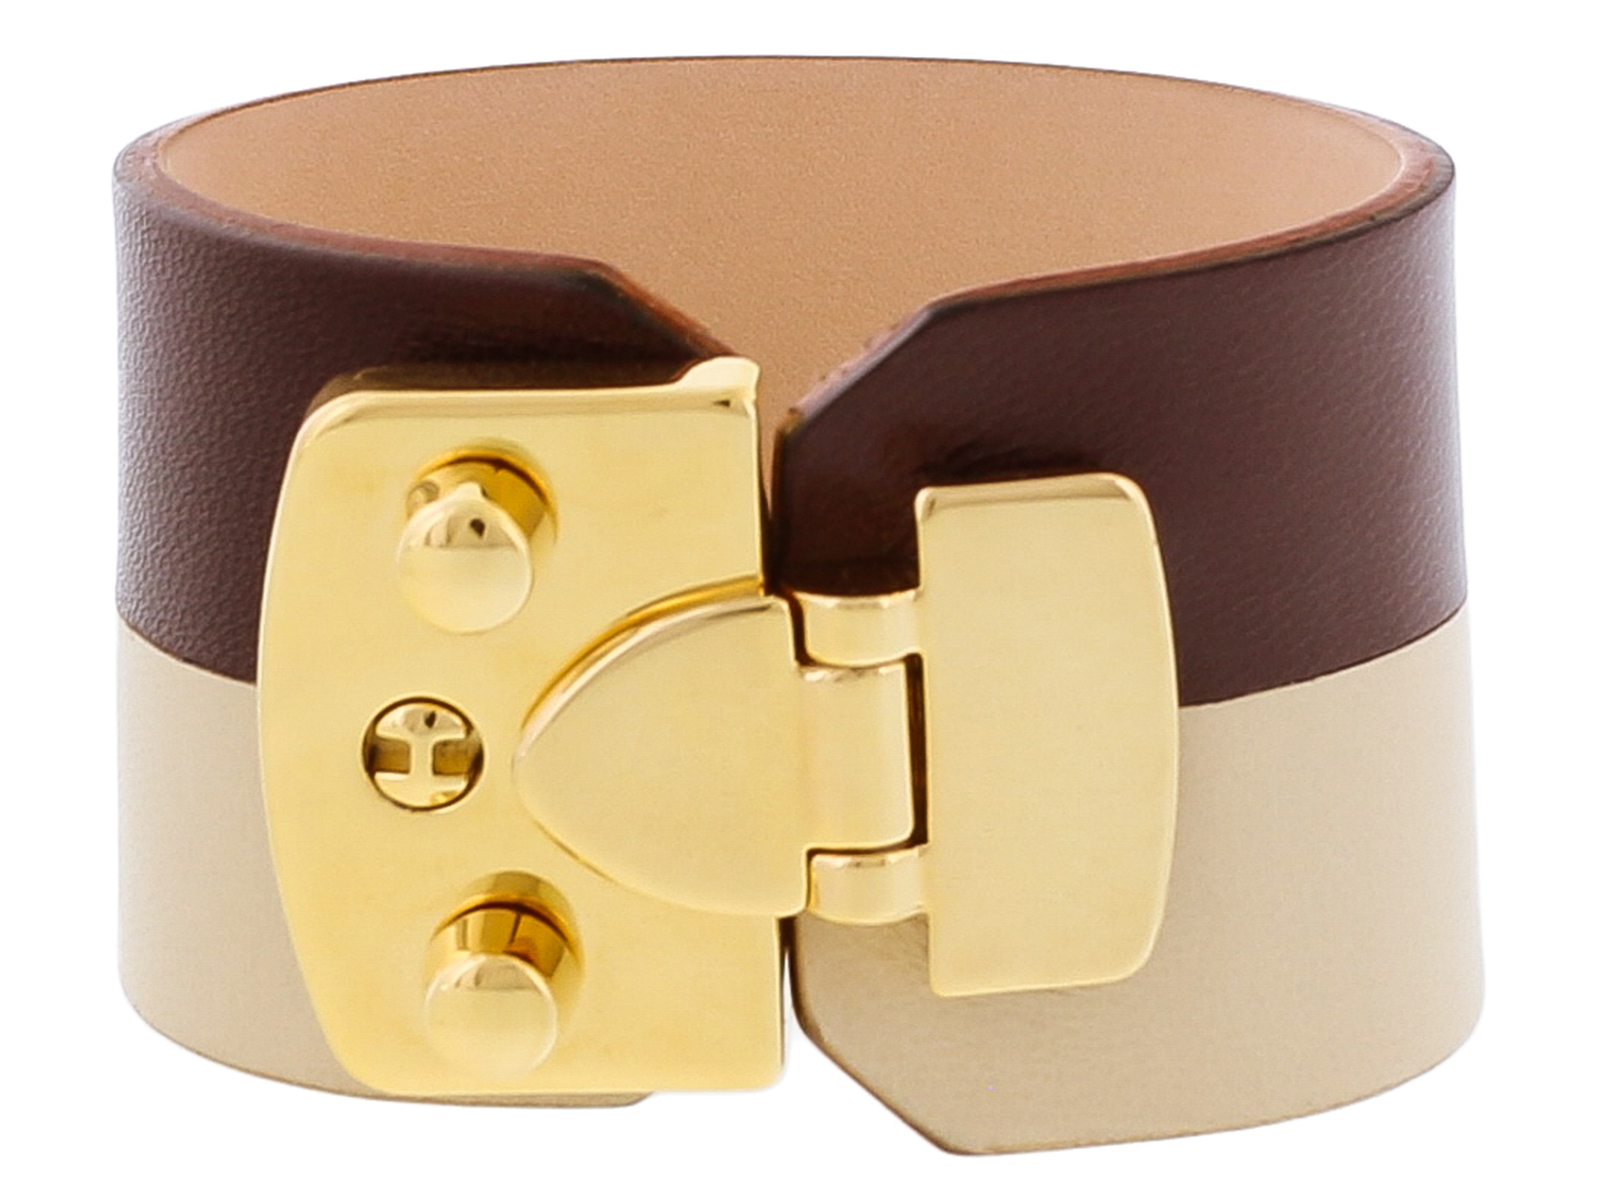 Stamerra BOSSA CIOCCO Chocolate/Beige Genuine Leather Cuff Bracelet